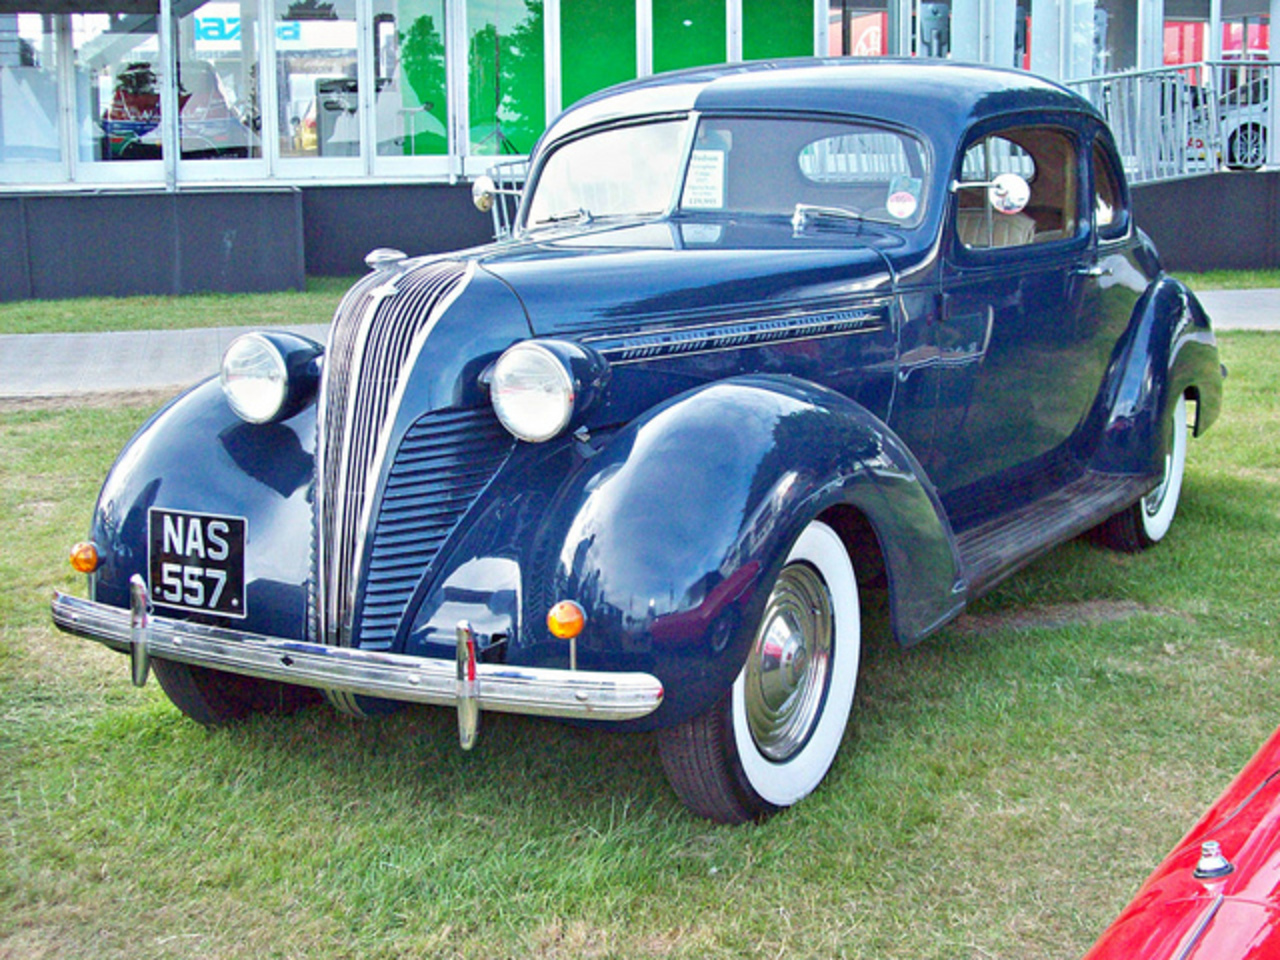 271 Hudson Terraplane Utility Coupe (1937) | Flickr - Photo Sharing!